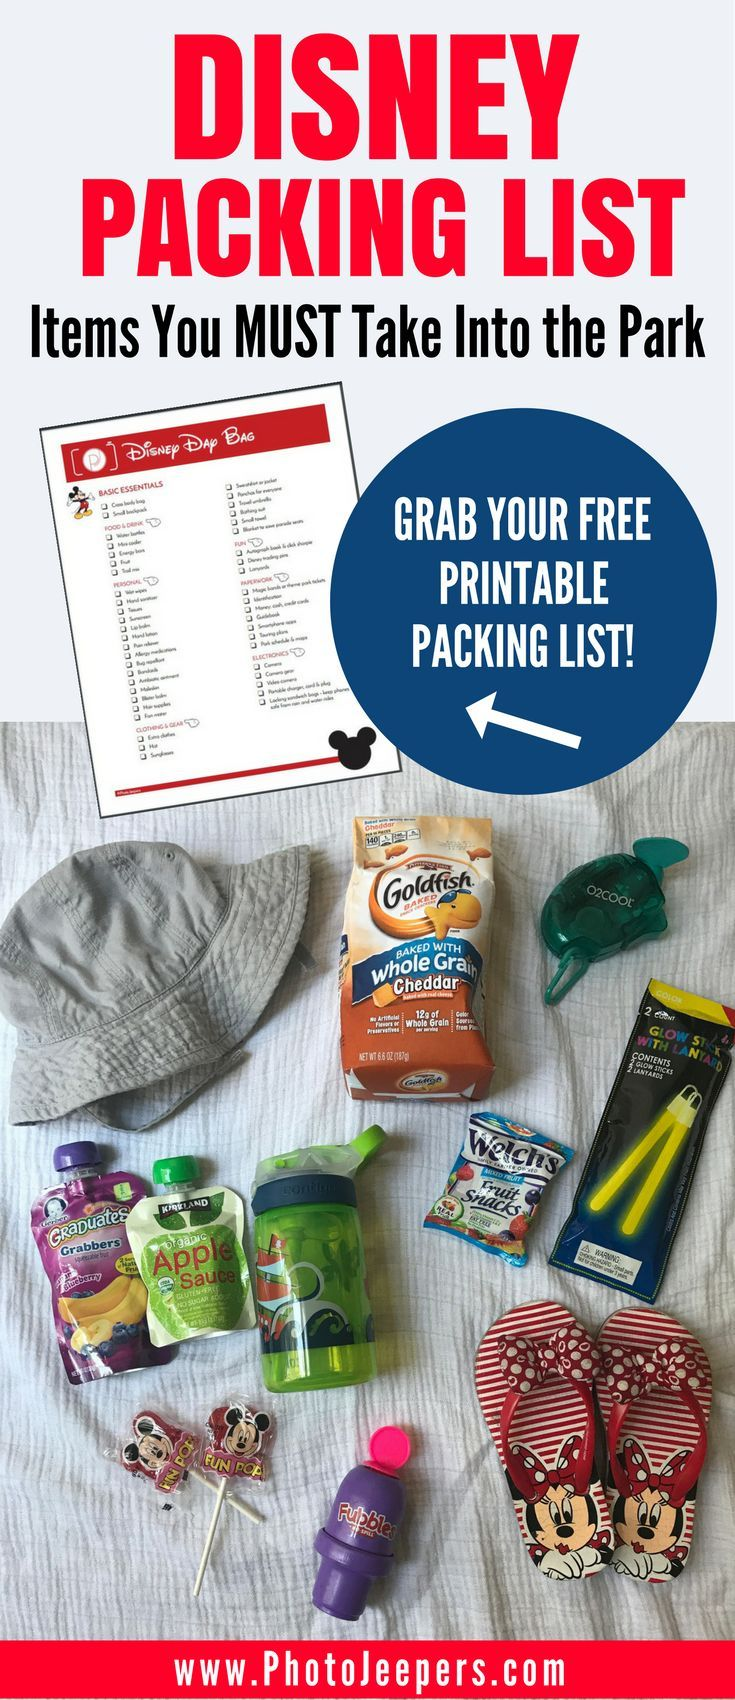 If you're planning a trip to Disney, you'll want to check out this Disney packing list first. It has everything you need to bring with you inside the Disney park including things to pack for kids. This packing list will be a lifesaver for Disney or any amusement park you may travel to this year. It includes items and tips for food & drink, clothing & gear, personal items and budget-friendly souvenirs and things to keep kids happy during the day. Make sure you save these things to bring for…